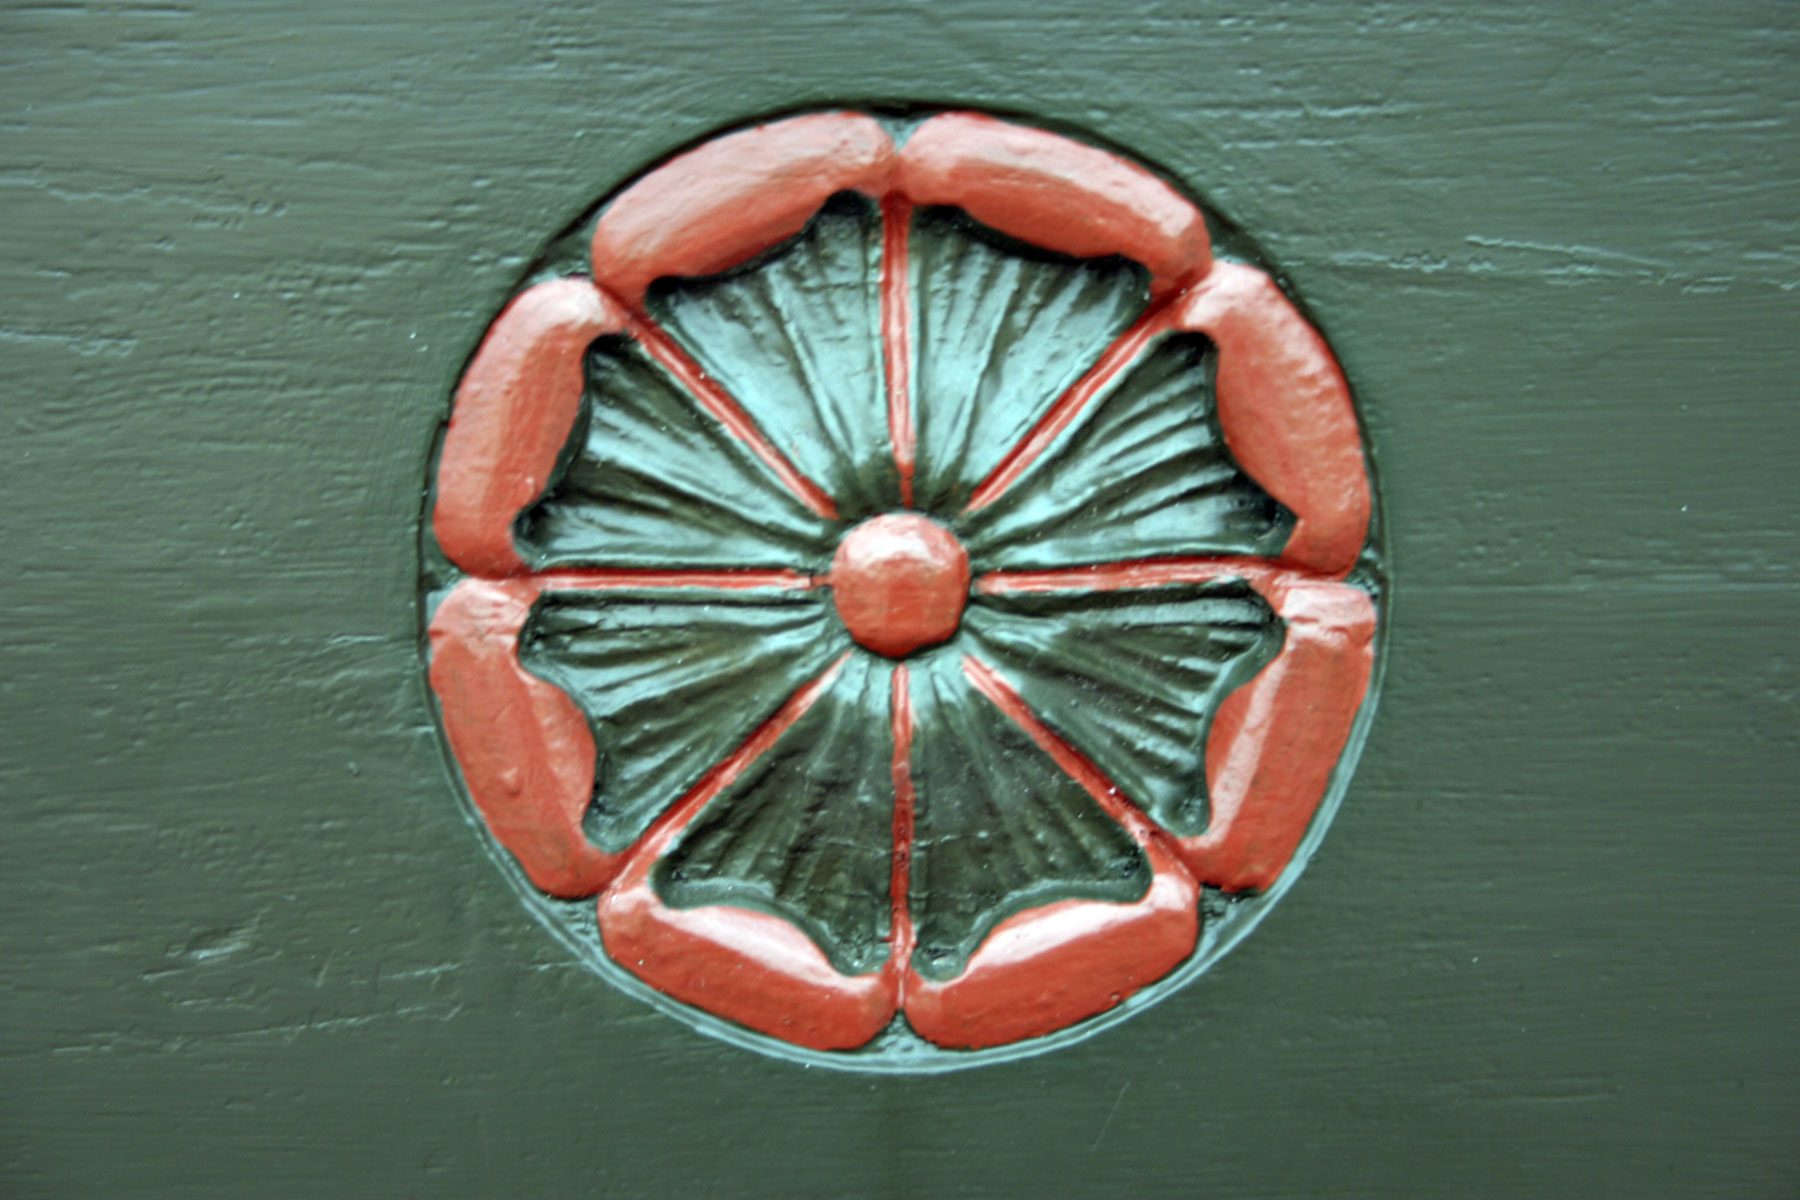 Flowery icon carved into a church door, Art, Carved, Church, Green, HQ Photo